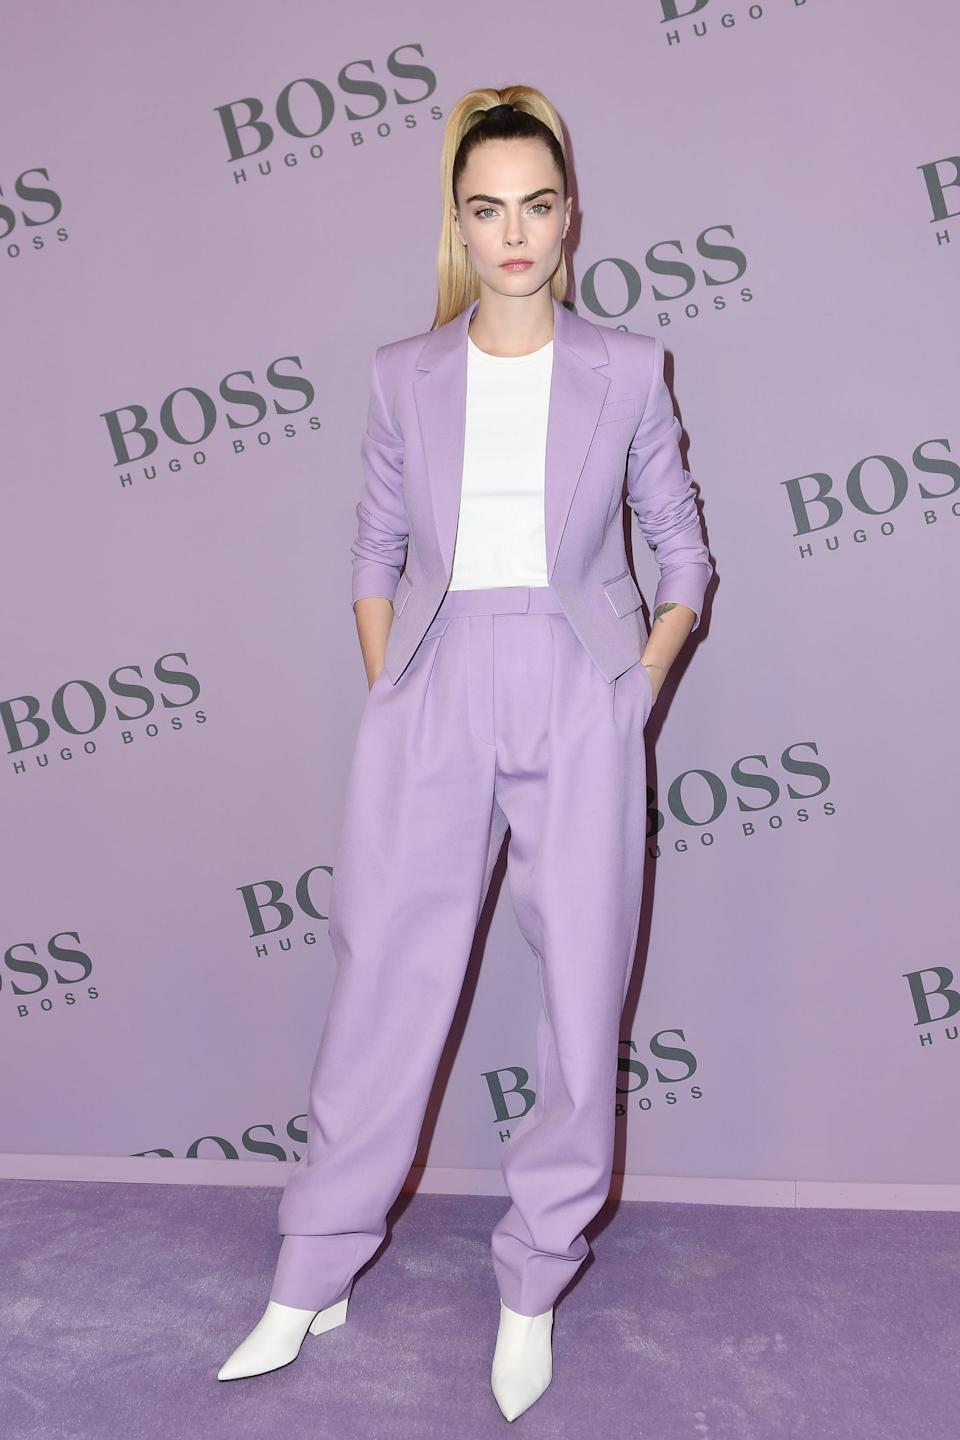 MILAN, ITALY - FEBRUARY 23: Cara Delevingne attends the Boss fashion show on February 23, 2020 in Milan, Italy. (Photo by Jacopo Raule/WireImage)